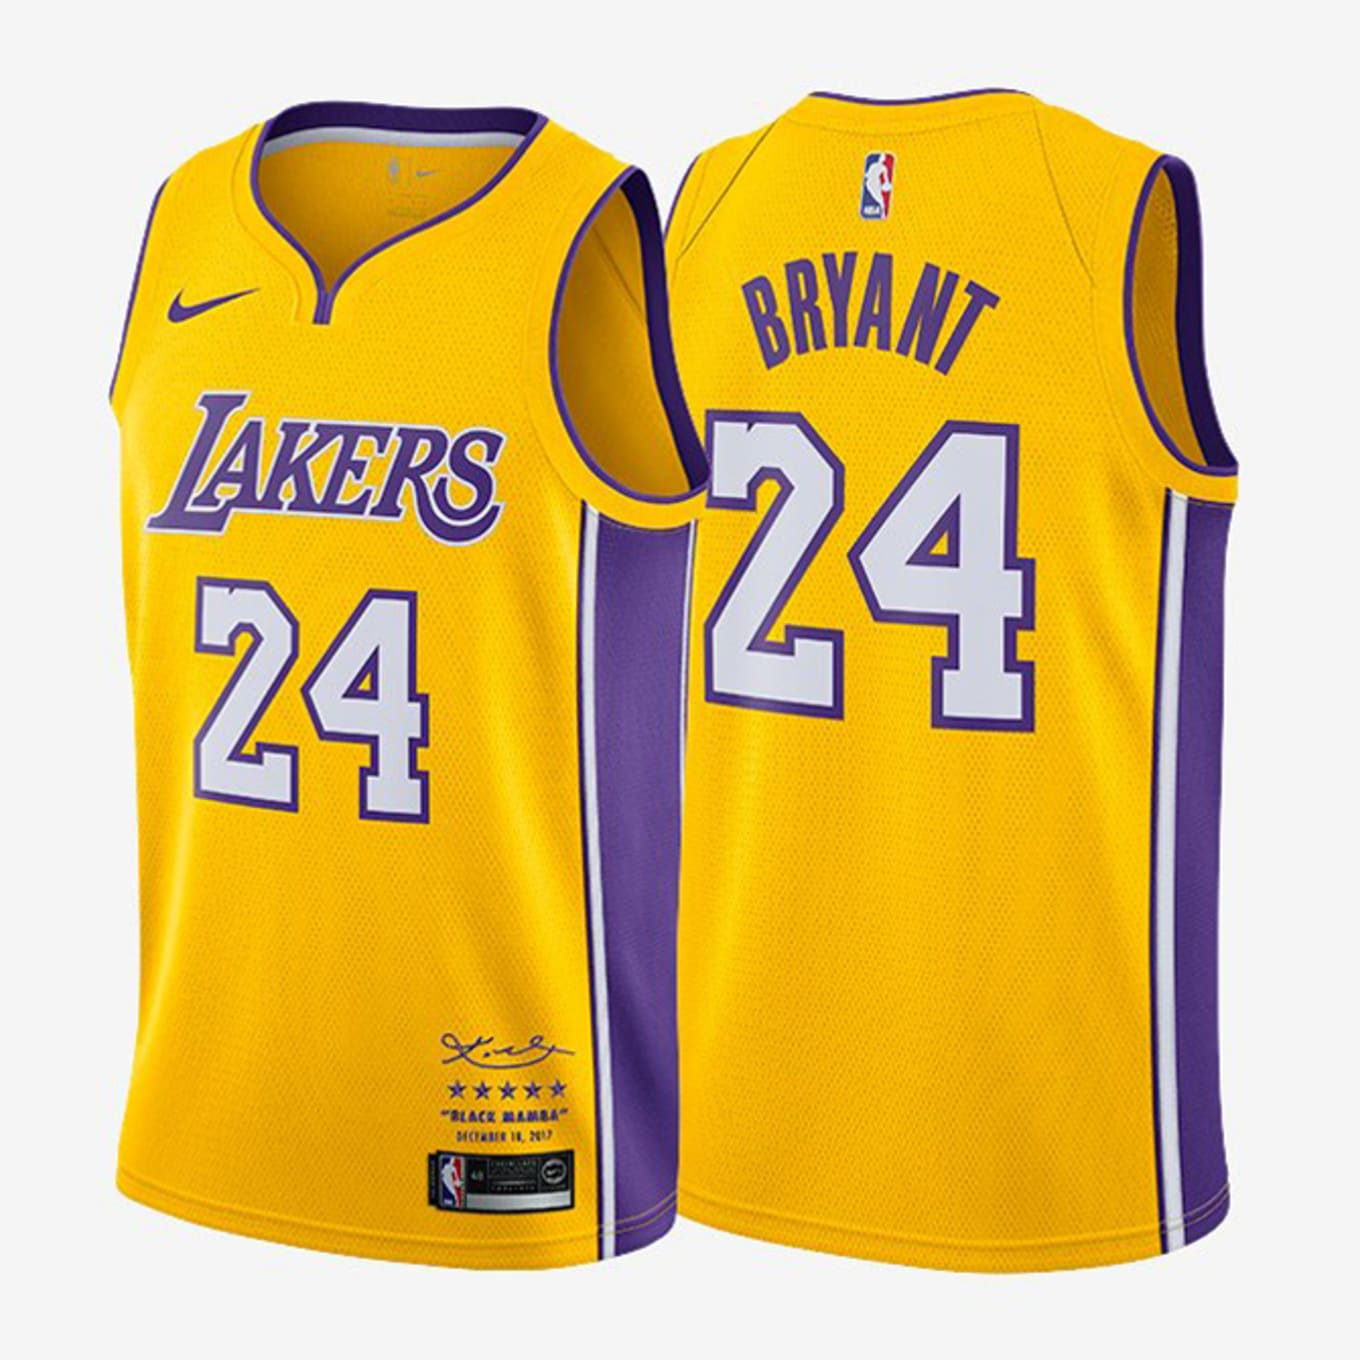 4bebf1990 Nike to Release Kobe Bryant Retirement Jerseys